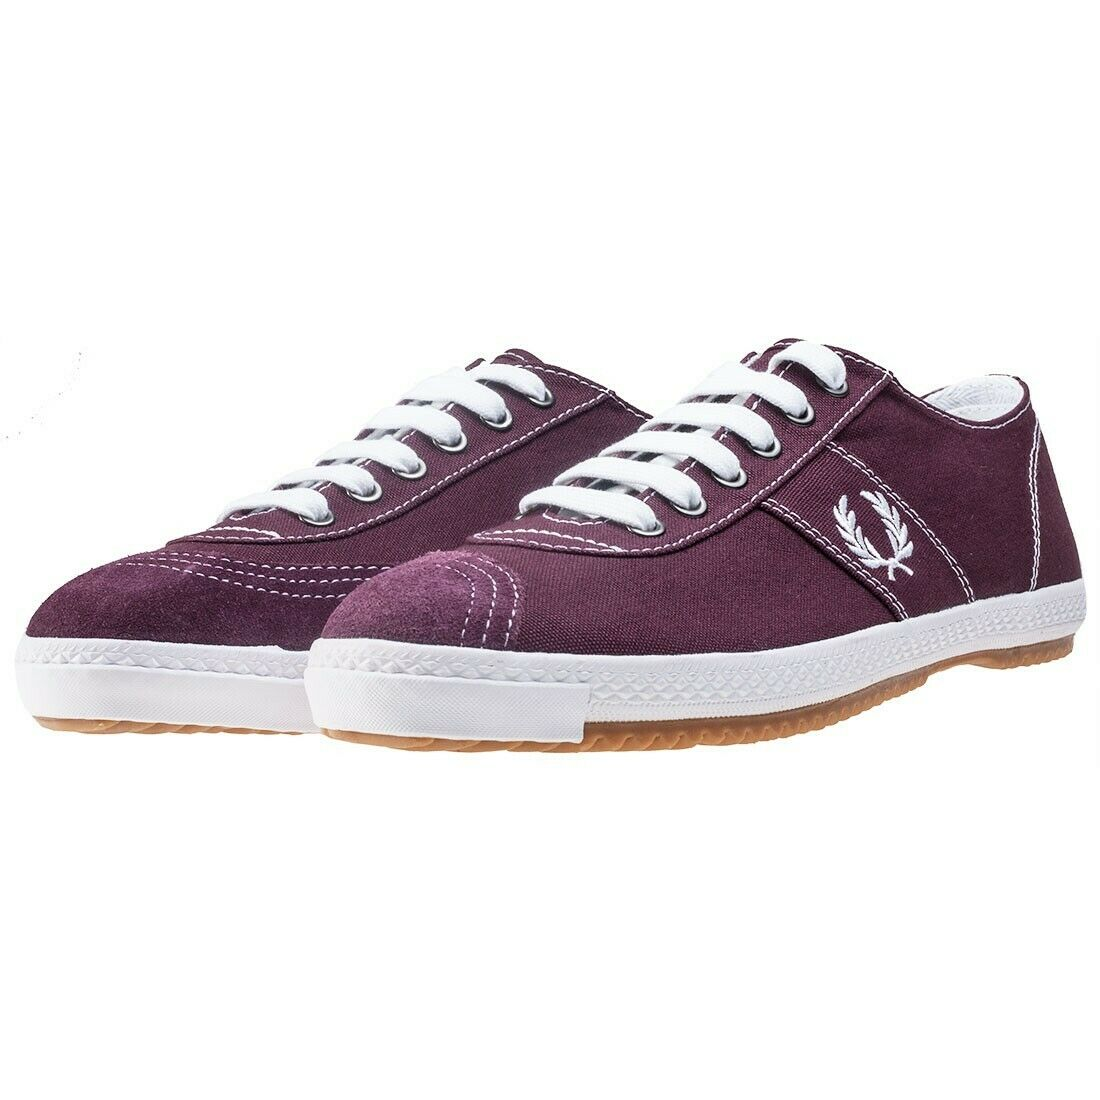 Frot Perry Table Tennis Canvas Plimsolls Trainers Pumps Casual schuhe B6309-799